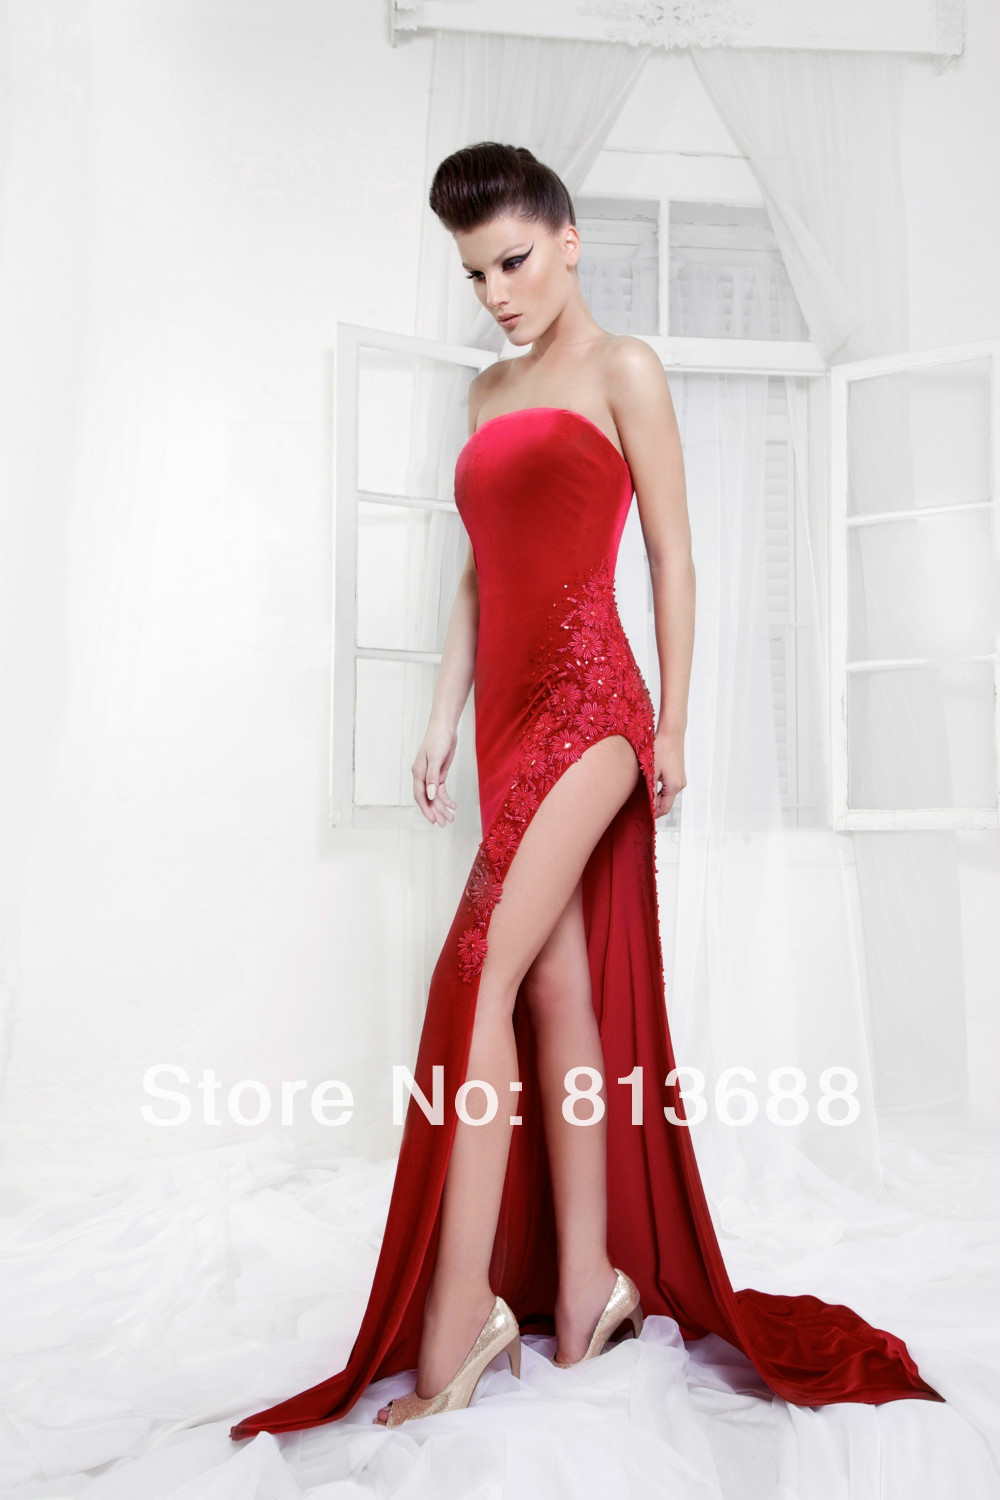 Charming Designer New Strapless Red Sheath Formal Evening Dresses Gown High Split Velvet Sweep Train Prom Pageant Gowns(China (Mainland))